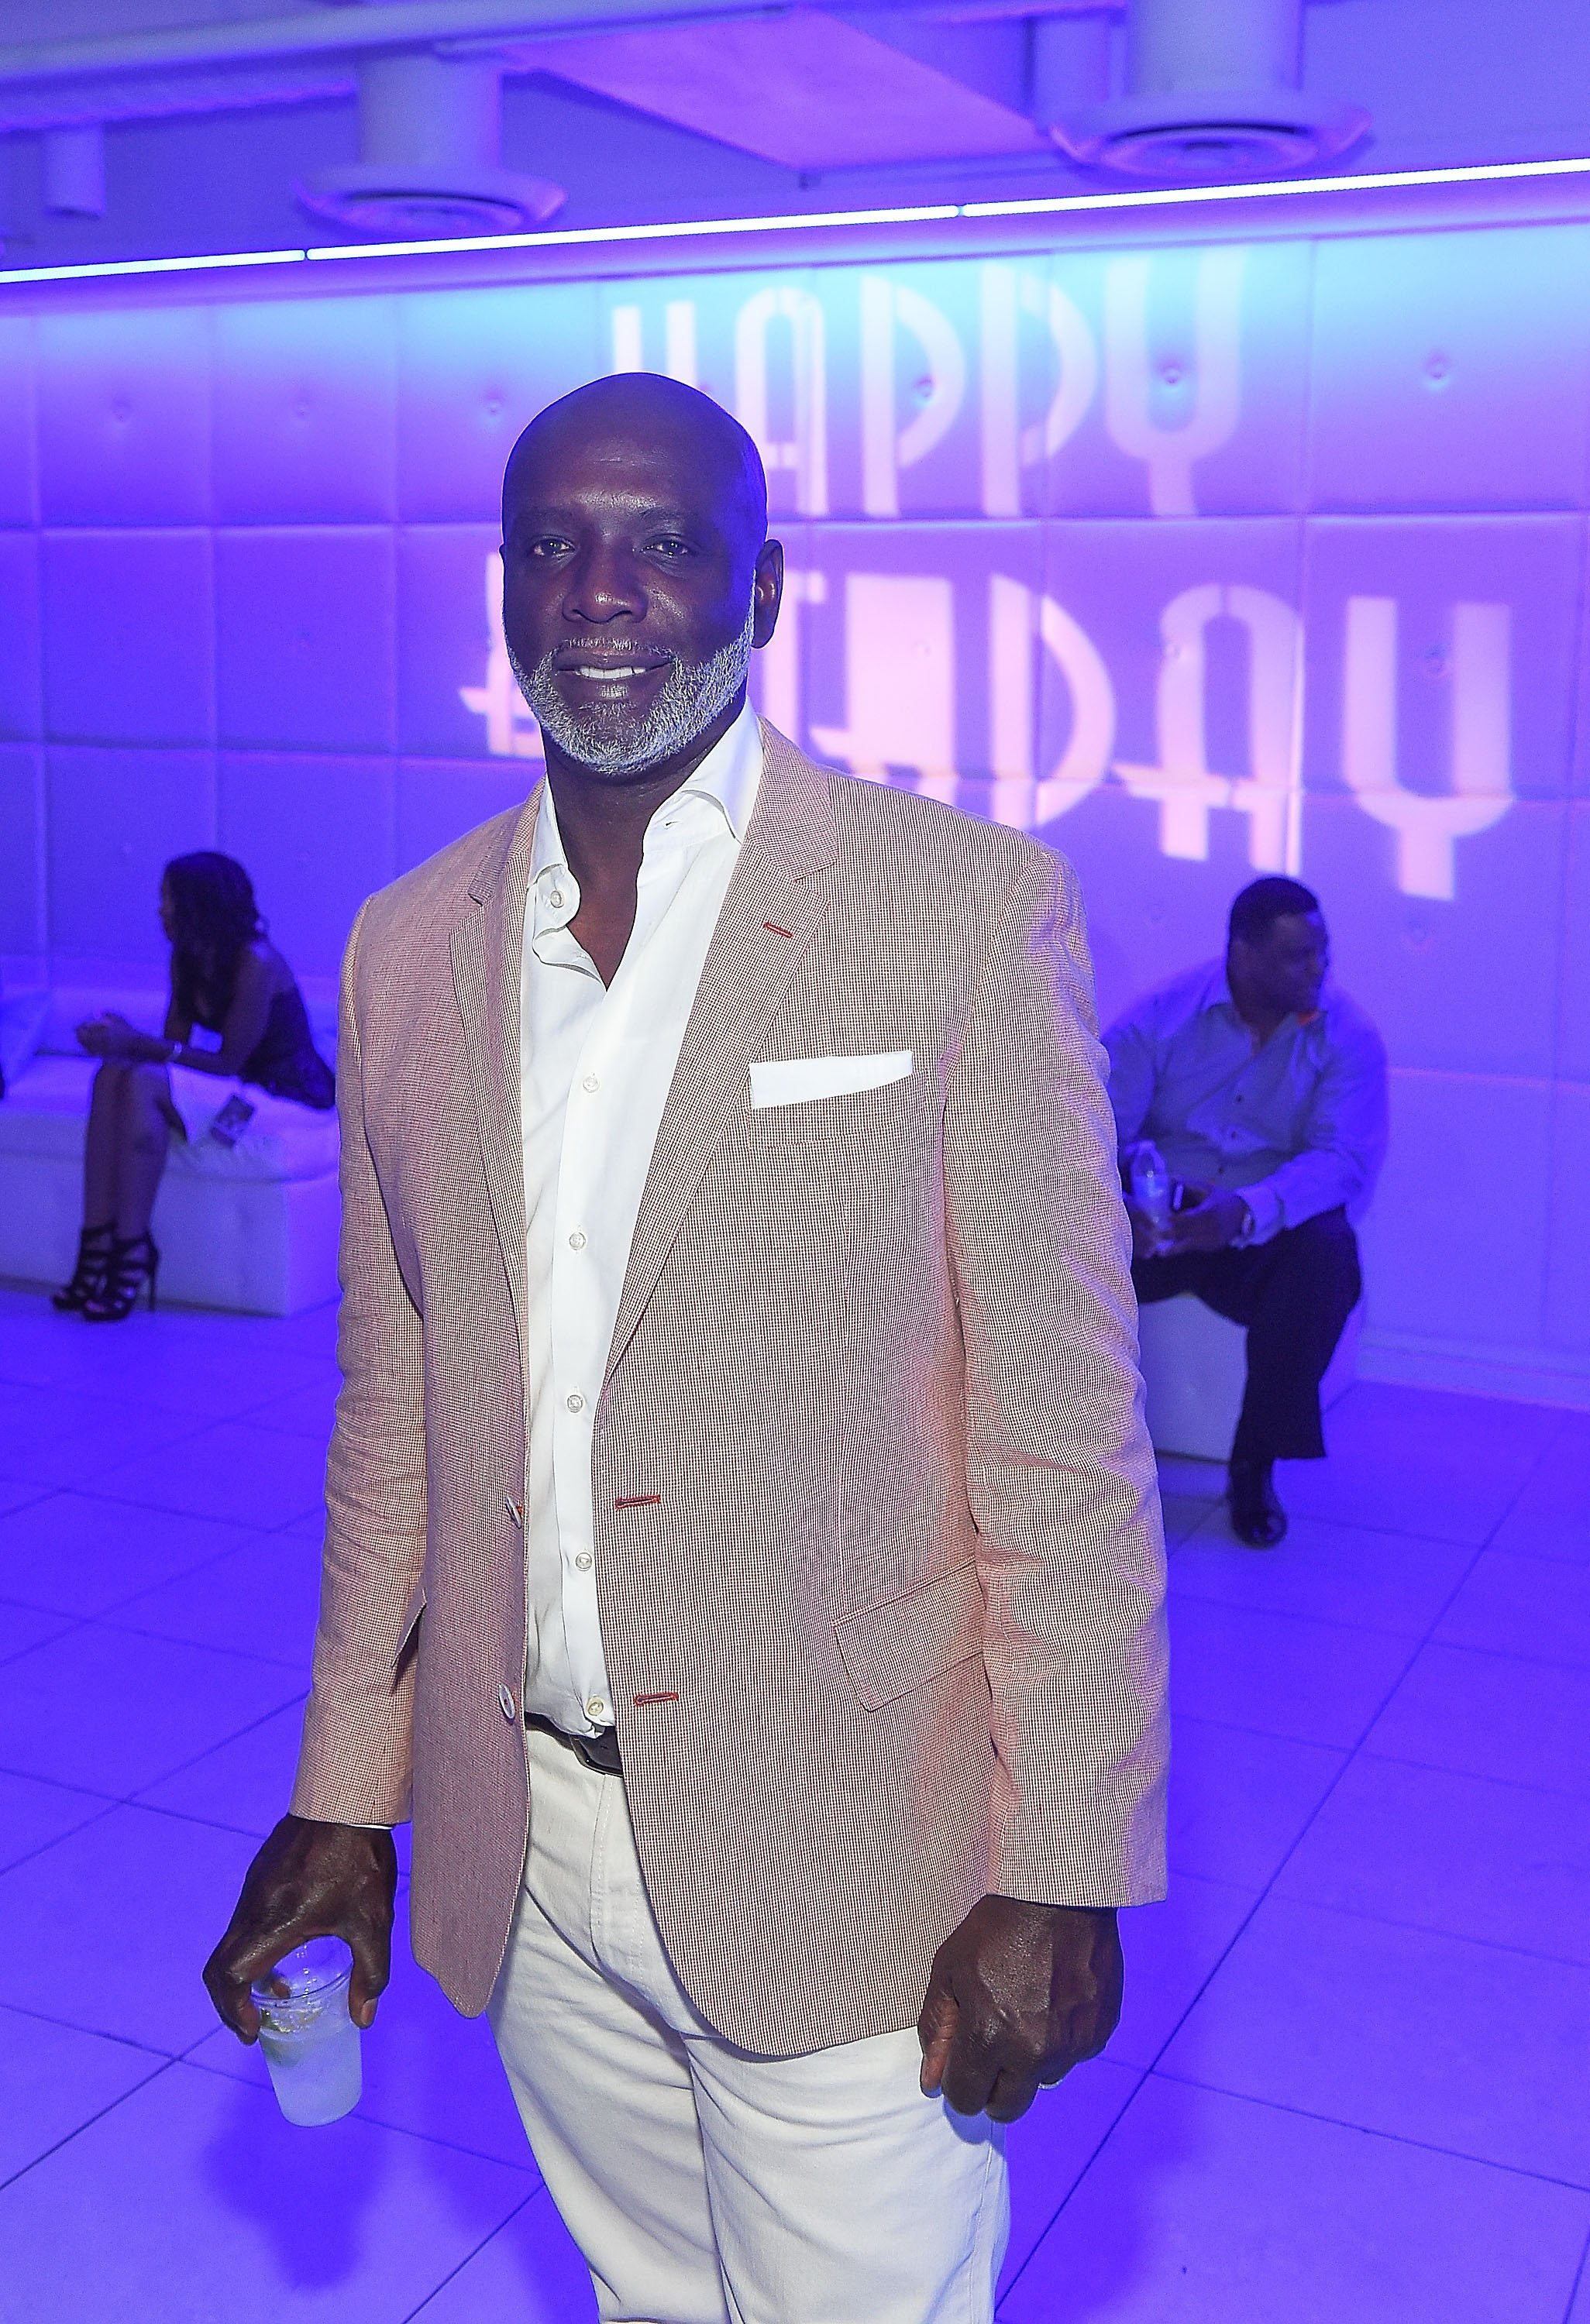 Peter Thomas at the birthday of Keith Sweat in Georgia in July 2014. | Photo: Getty Images